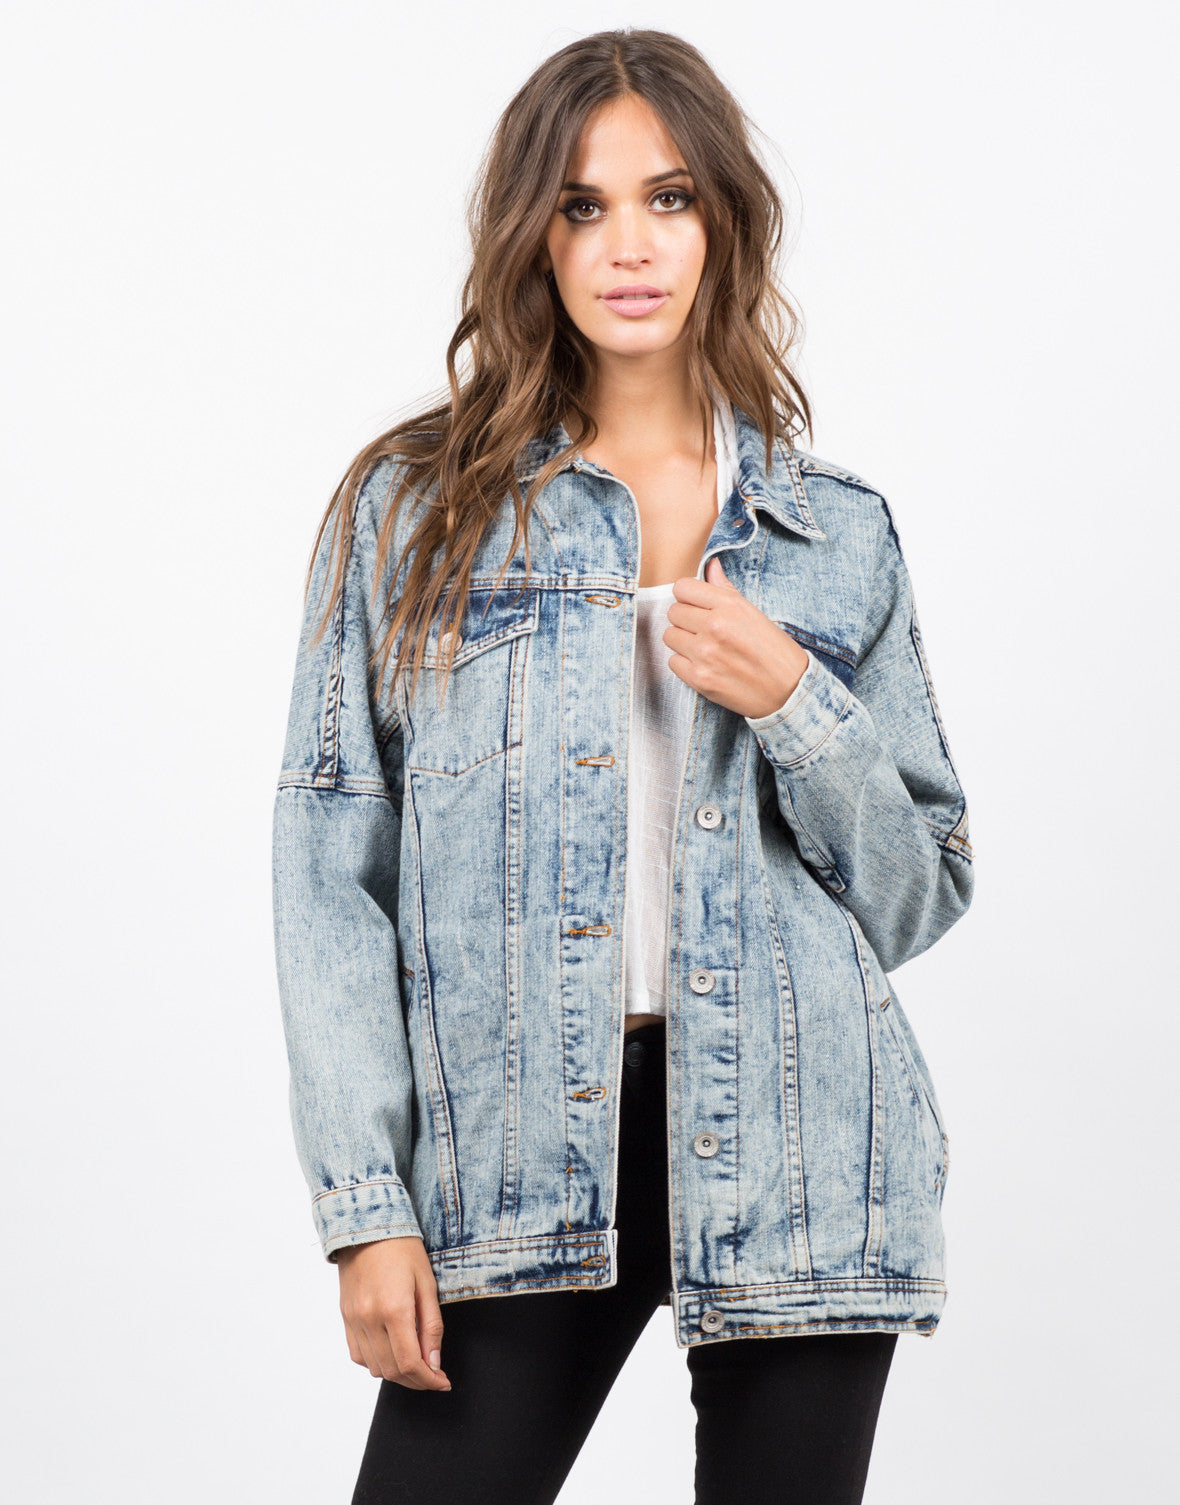 DENIM JACKETS. Buy new and vintage denim jackets. Shop all denim jackets from our boutiques.